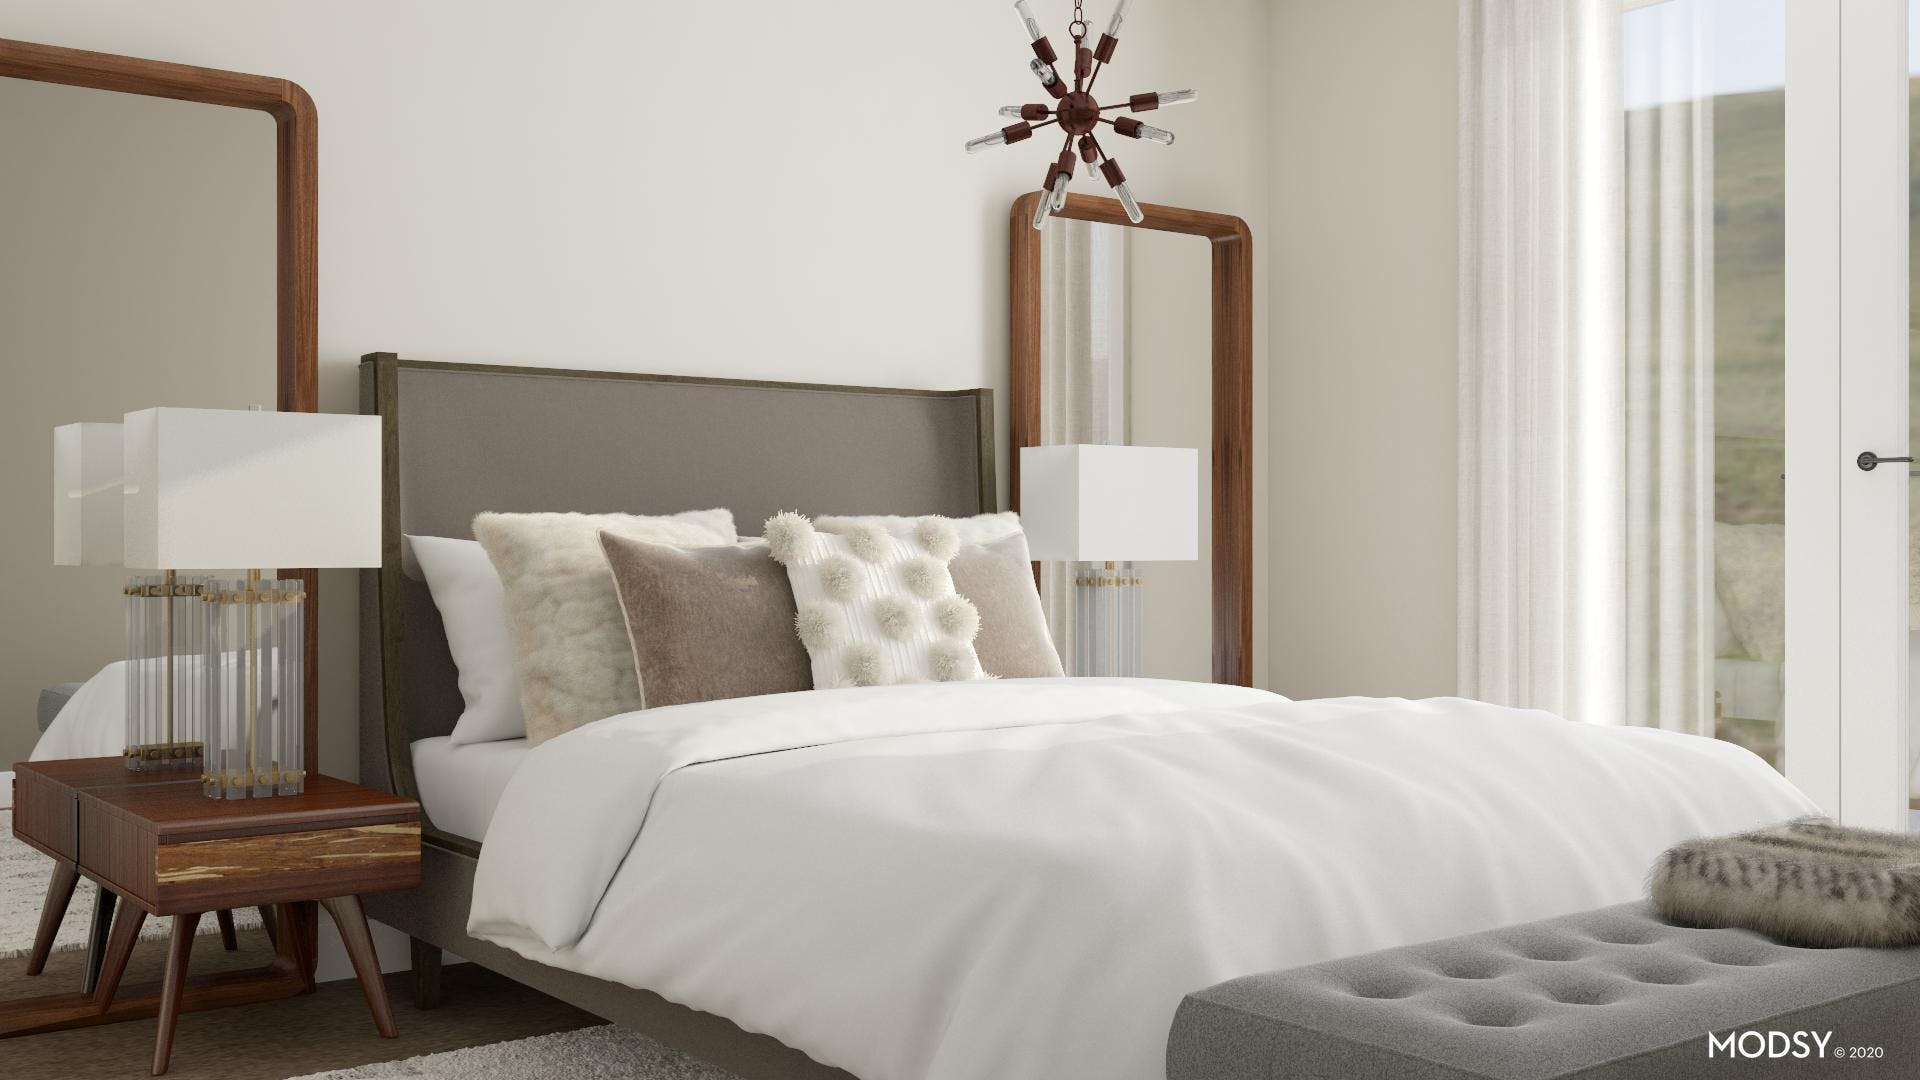 Neutral Tone For A Modern Bedroom